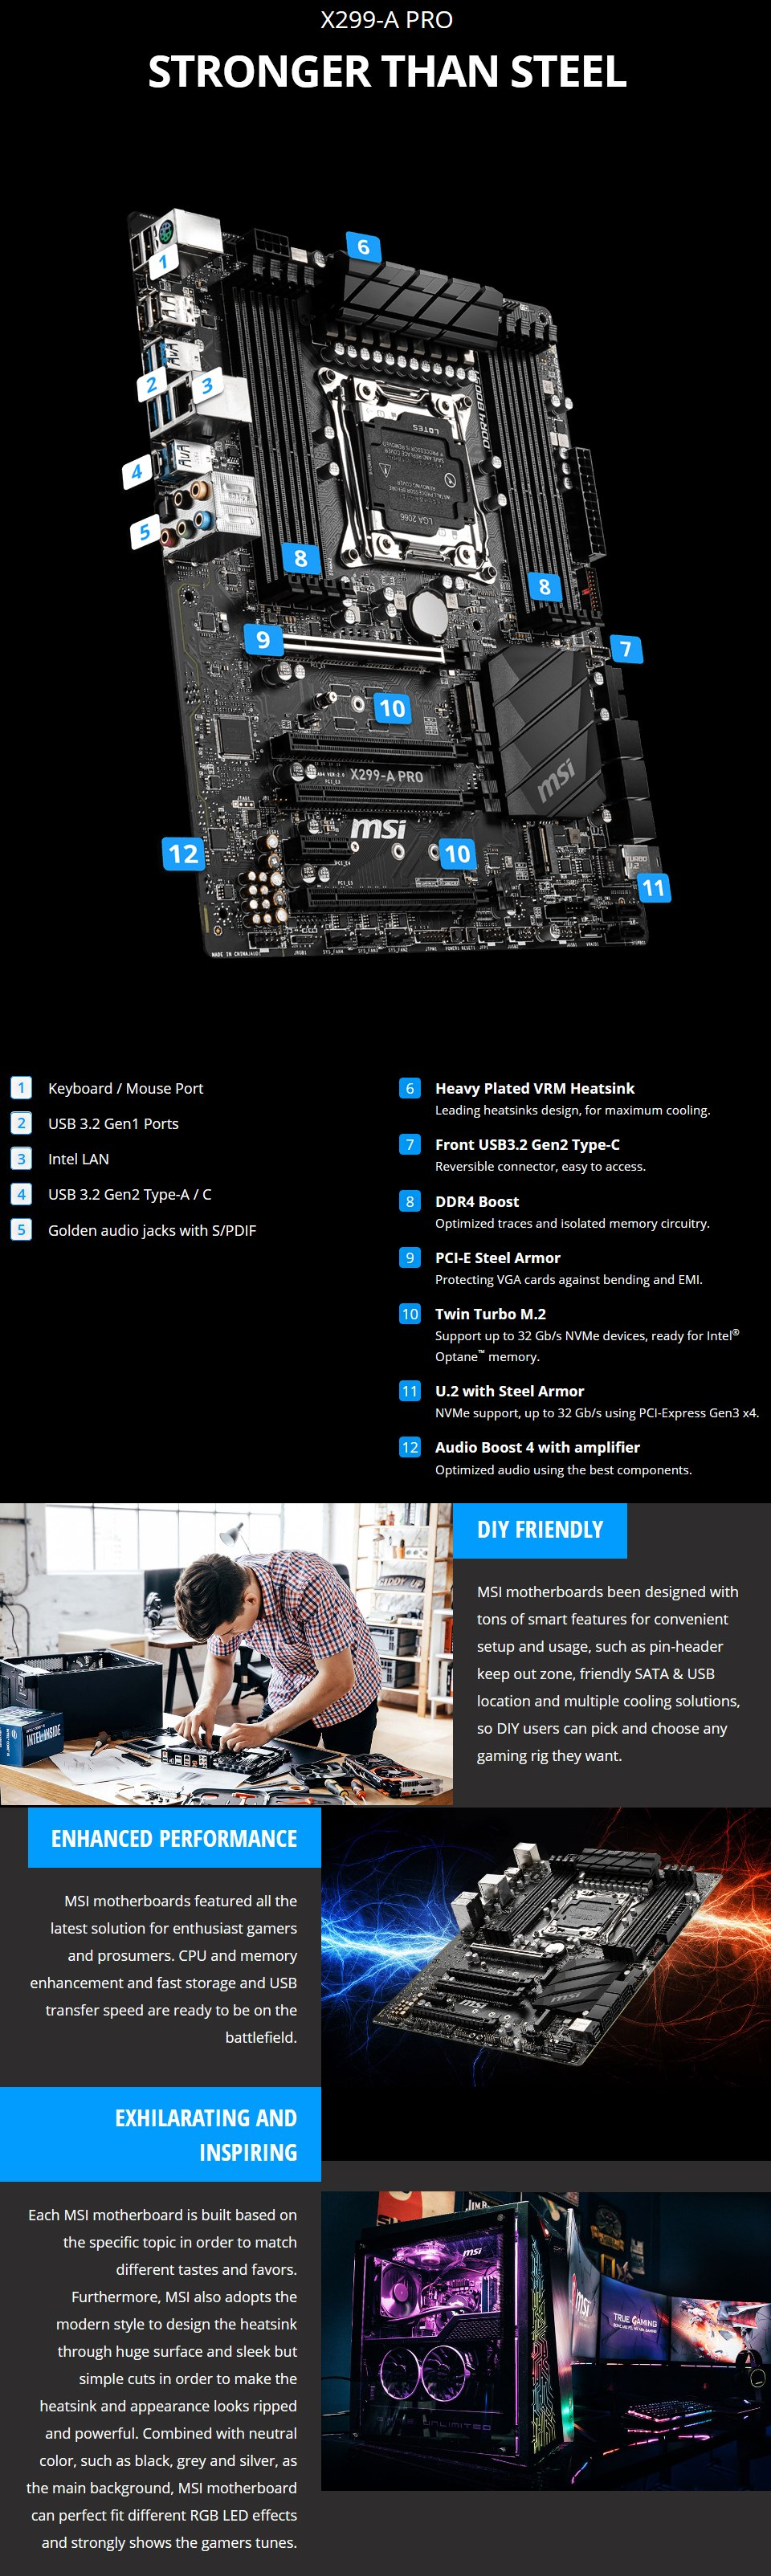 MSI X299-A Pro Motherboard features